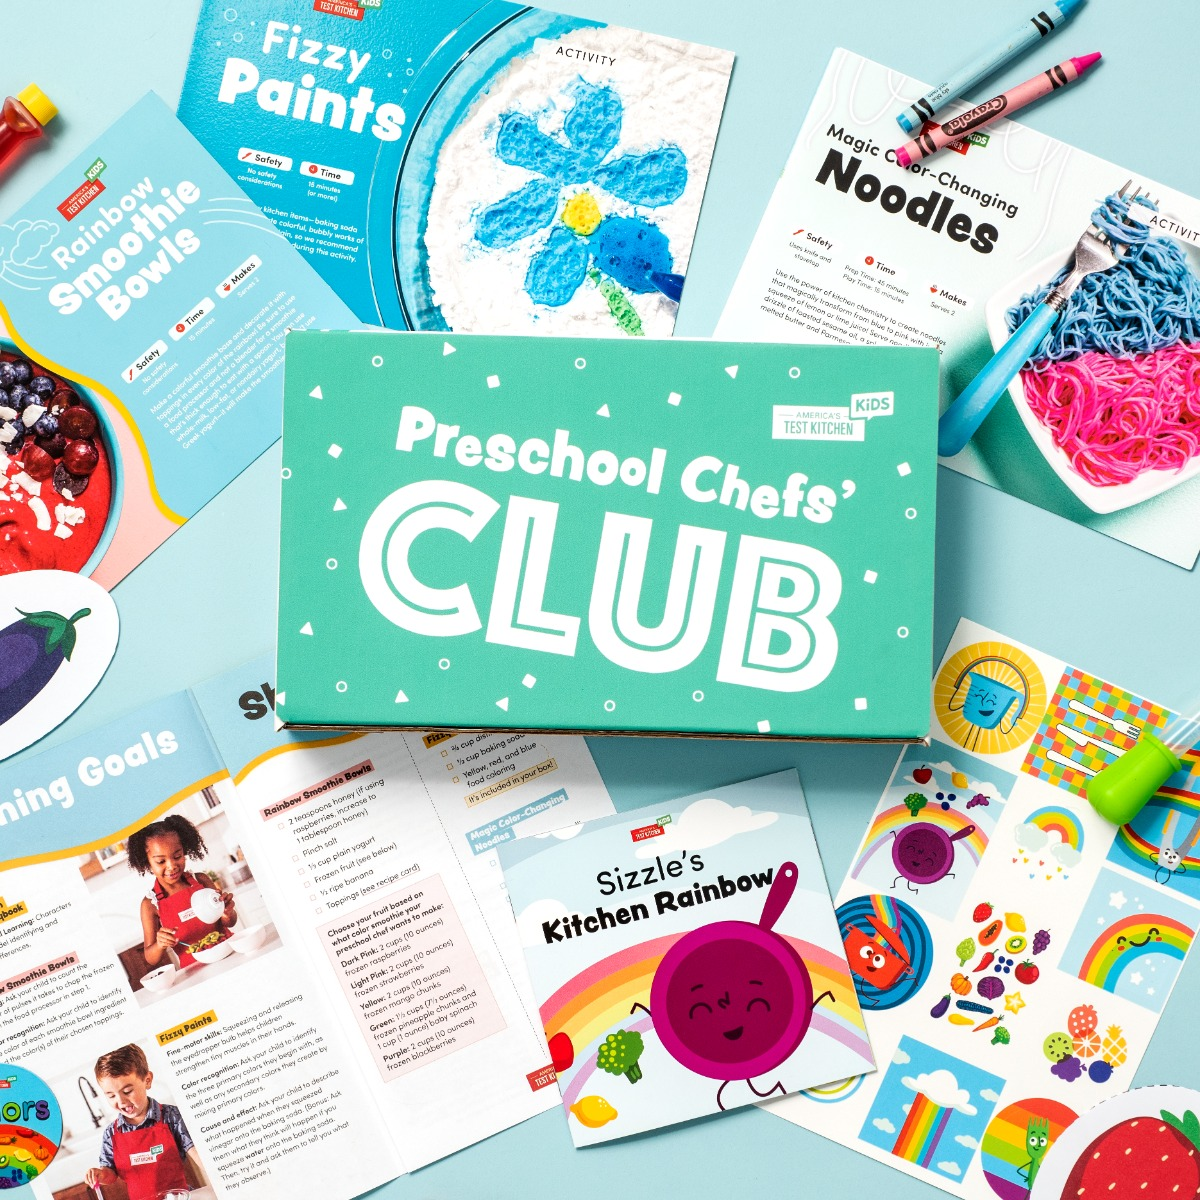 Preschool Chefs' Club Monthly Boxes